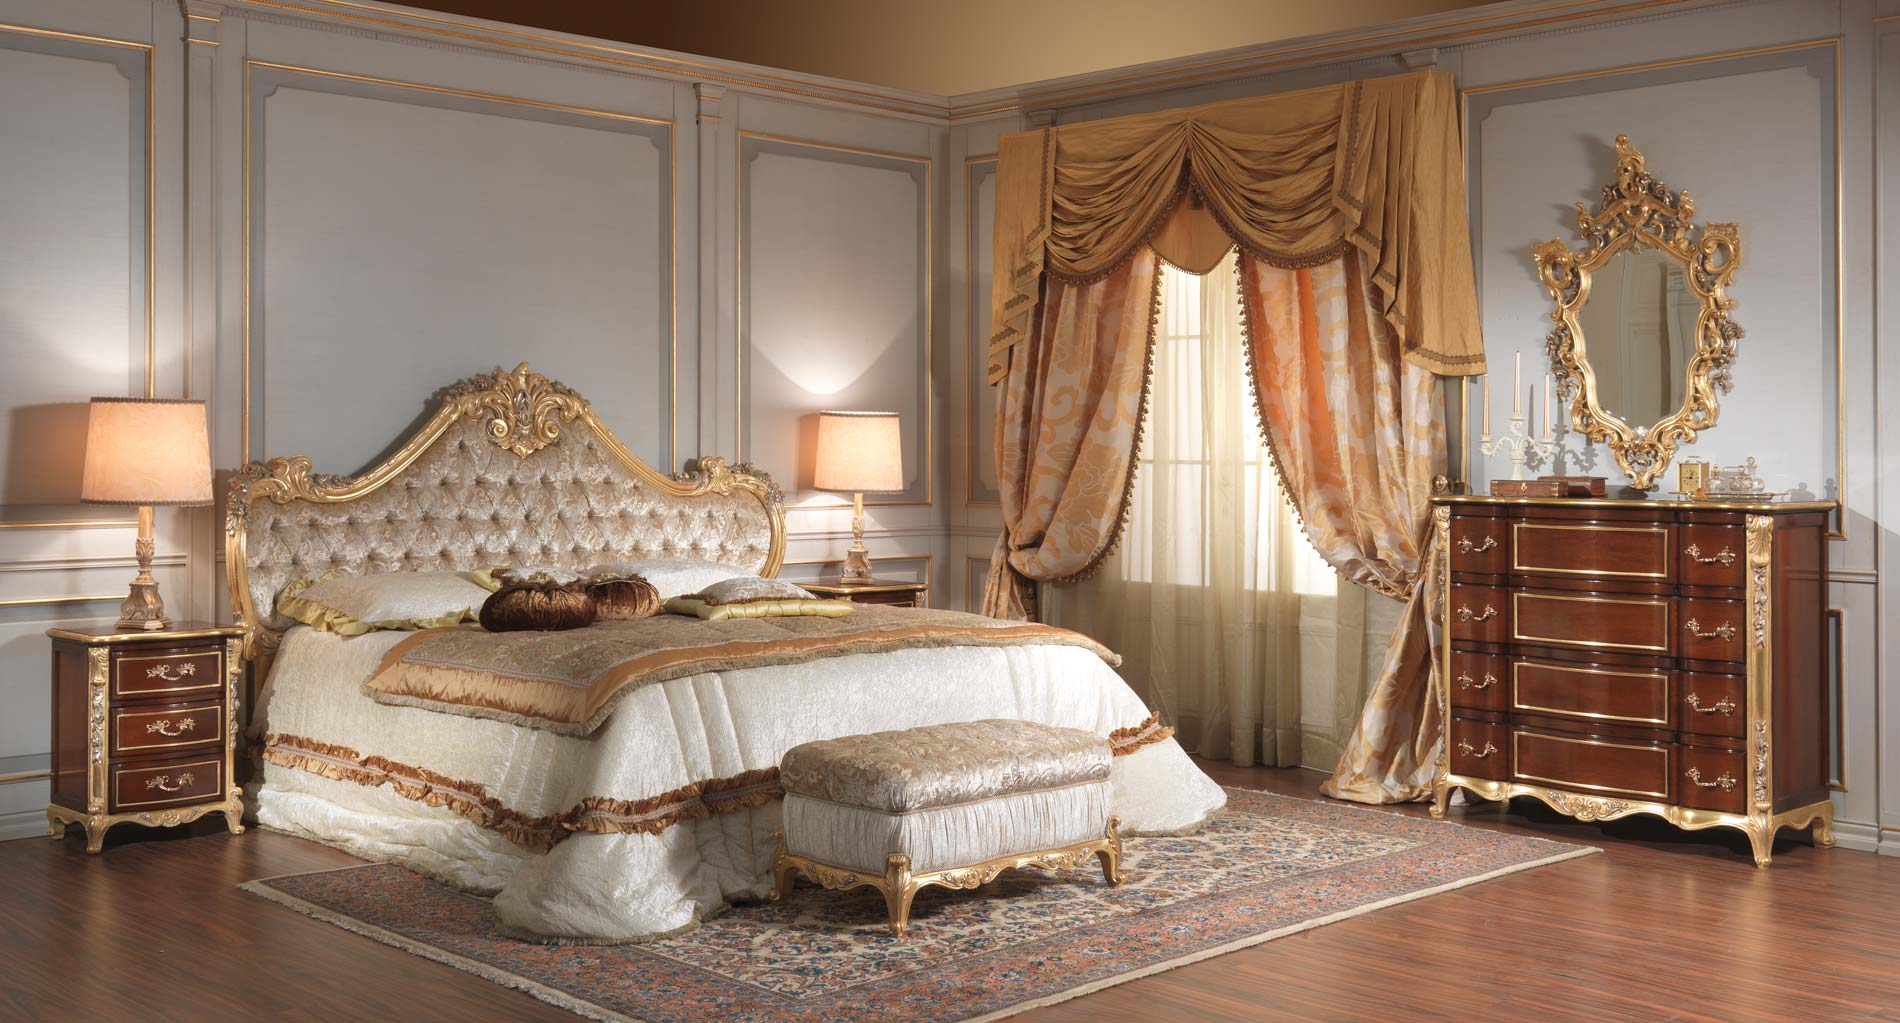 mobili classici di lusso made in italy vimercati. Black Bedroom Furniture Sets. Home Design Ideas